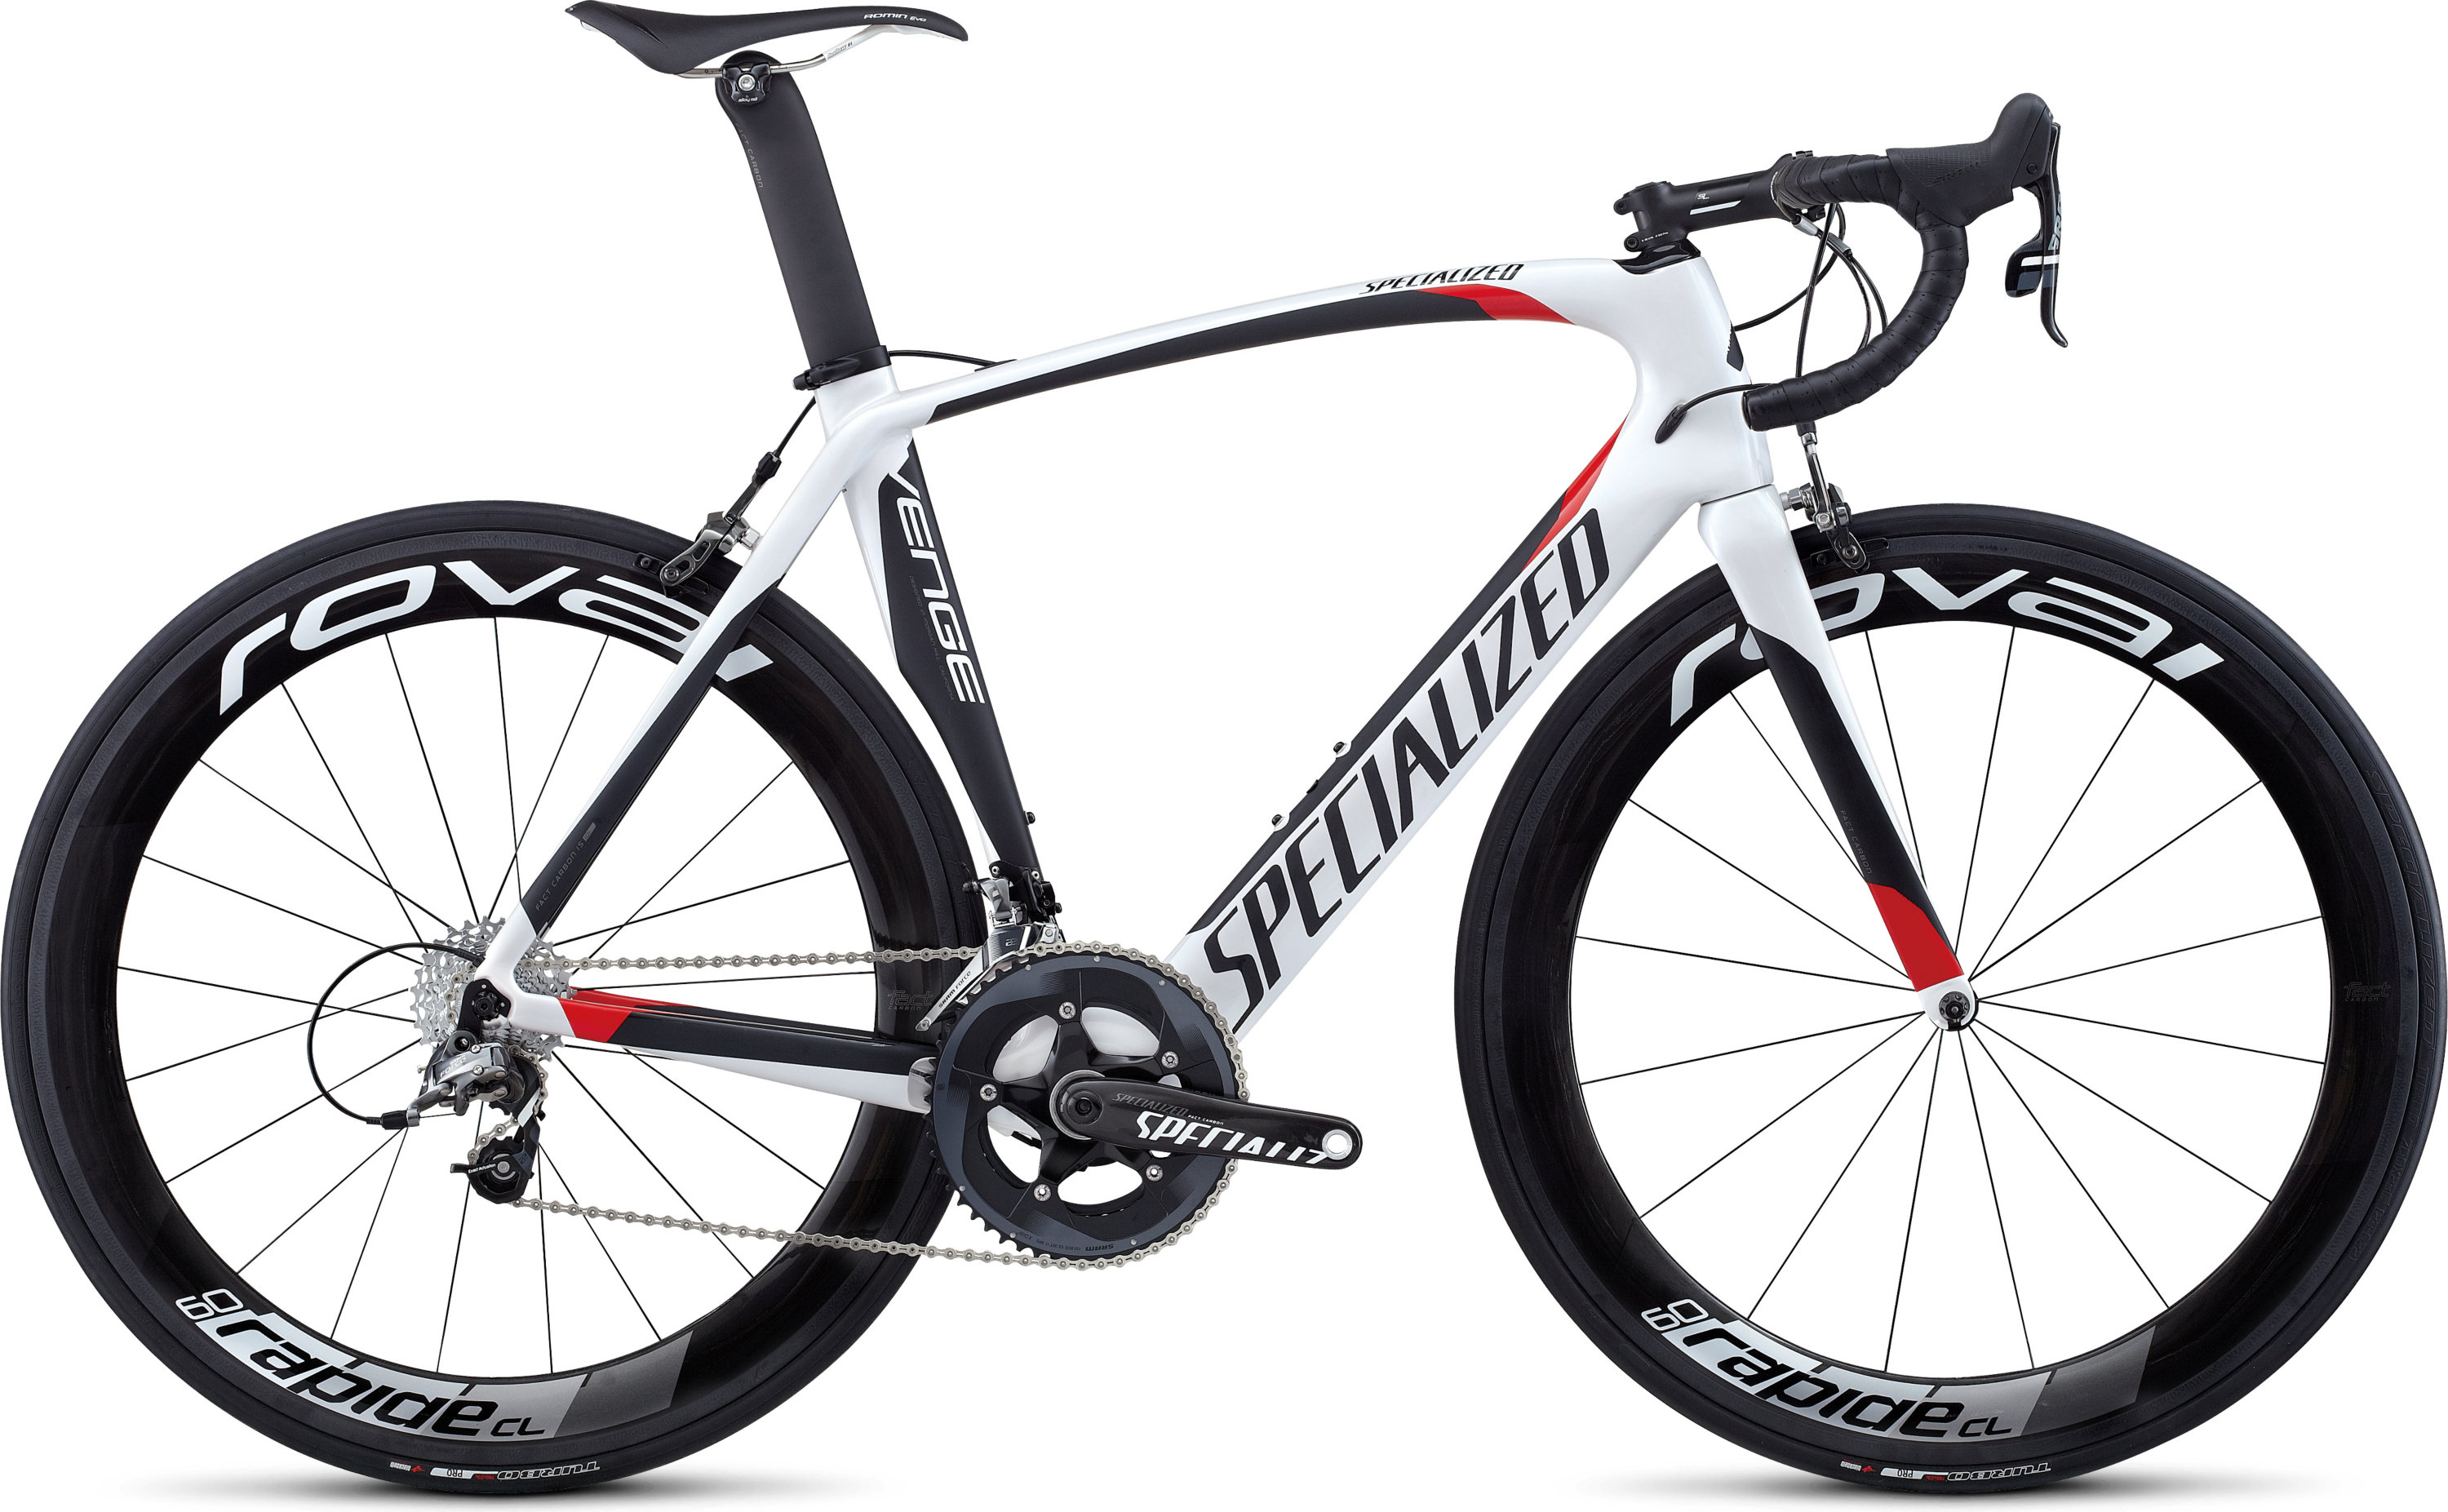 f647627ec1e Venge Pro Race Force | Specialized.com